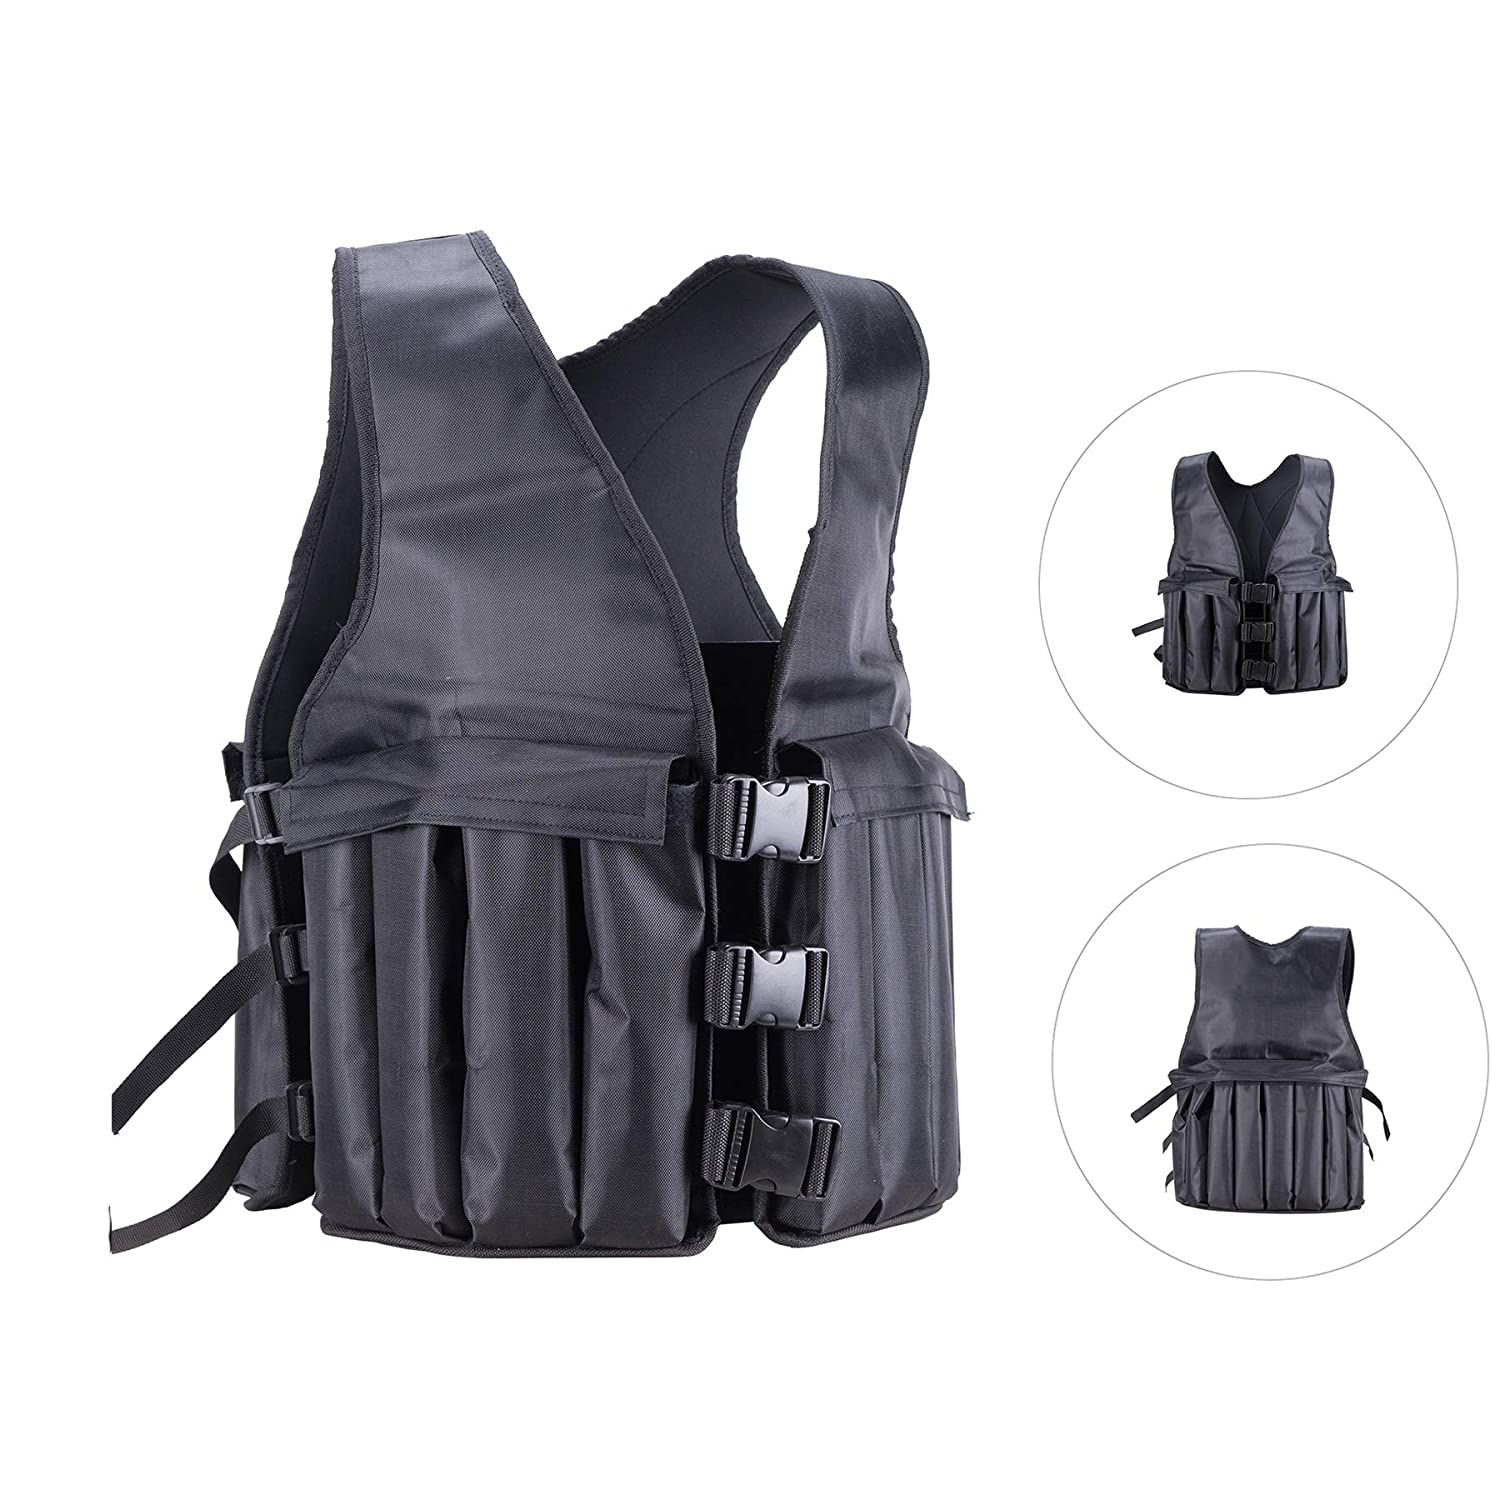 Pinty Fitness Weighted Vest Men 1-20lbs Adjustable for Fitness Workout Cardio Pinty FWV-0020-BK